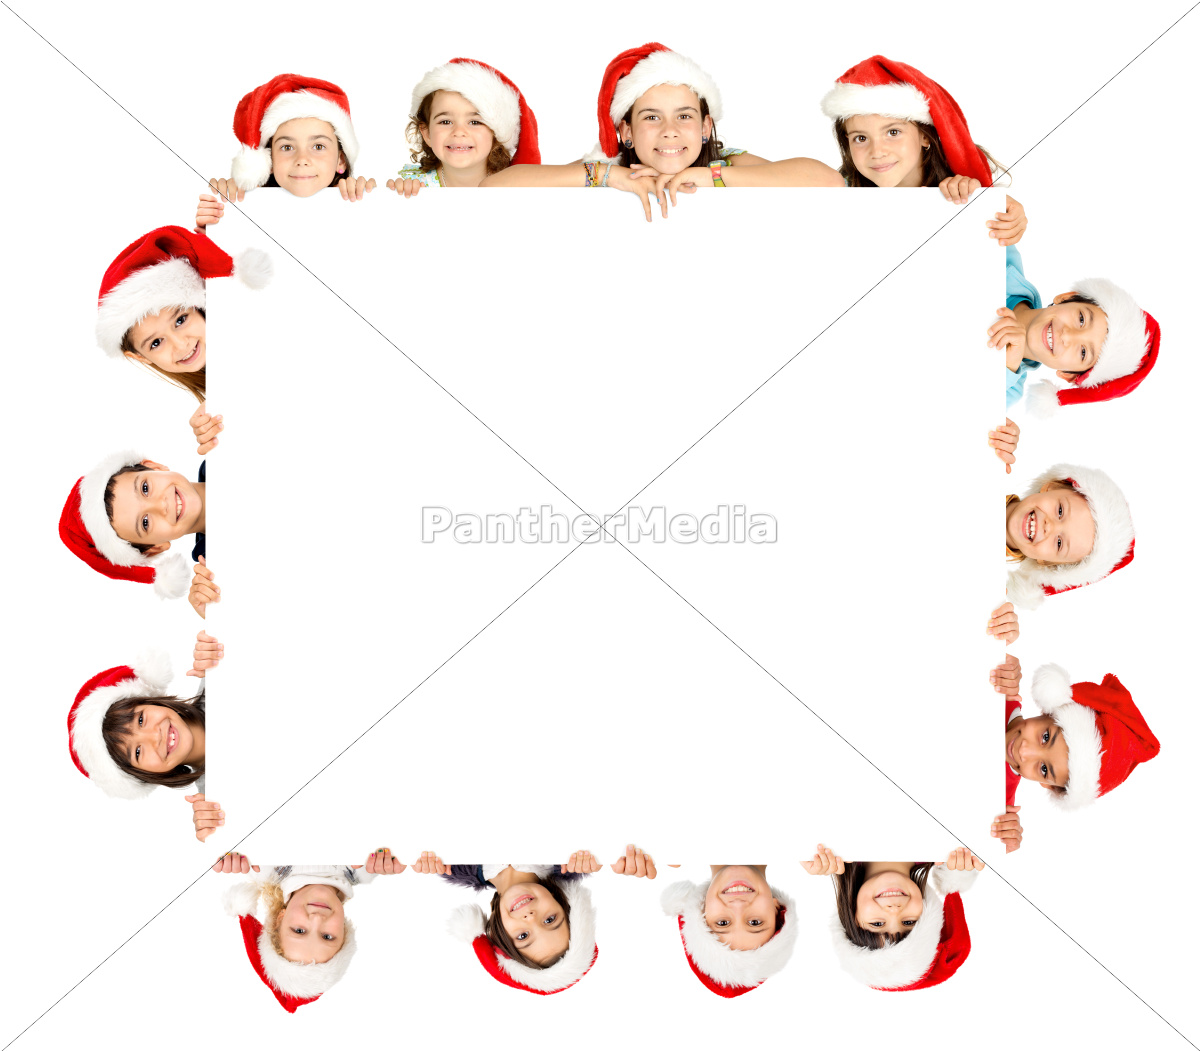 hat, christmas, delighted, unambitious, enthusiastic, merry - 10203719